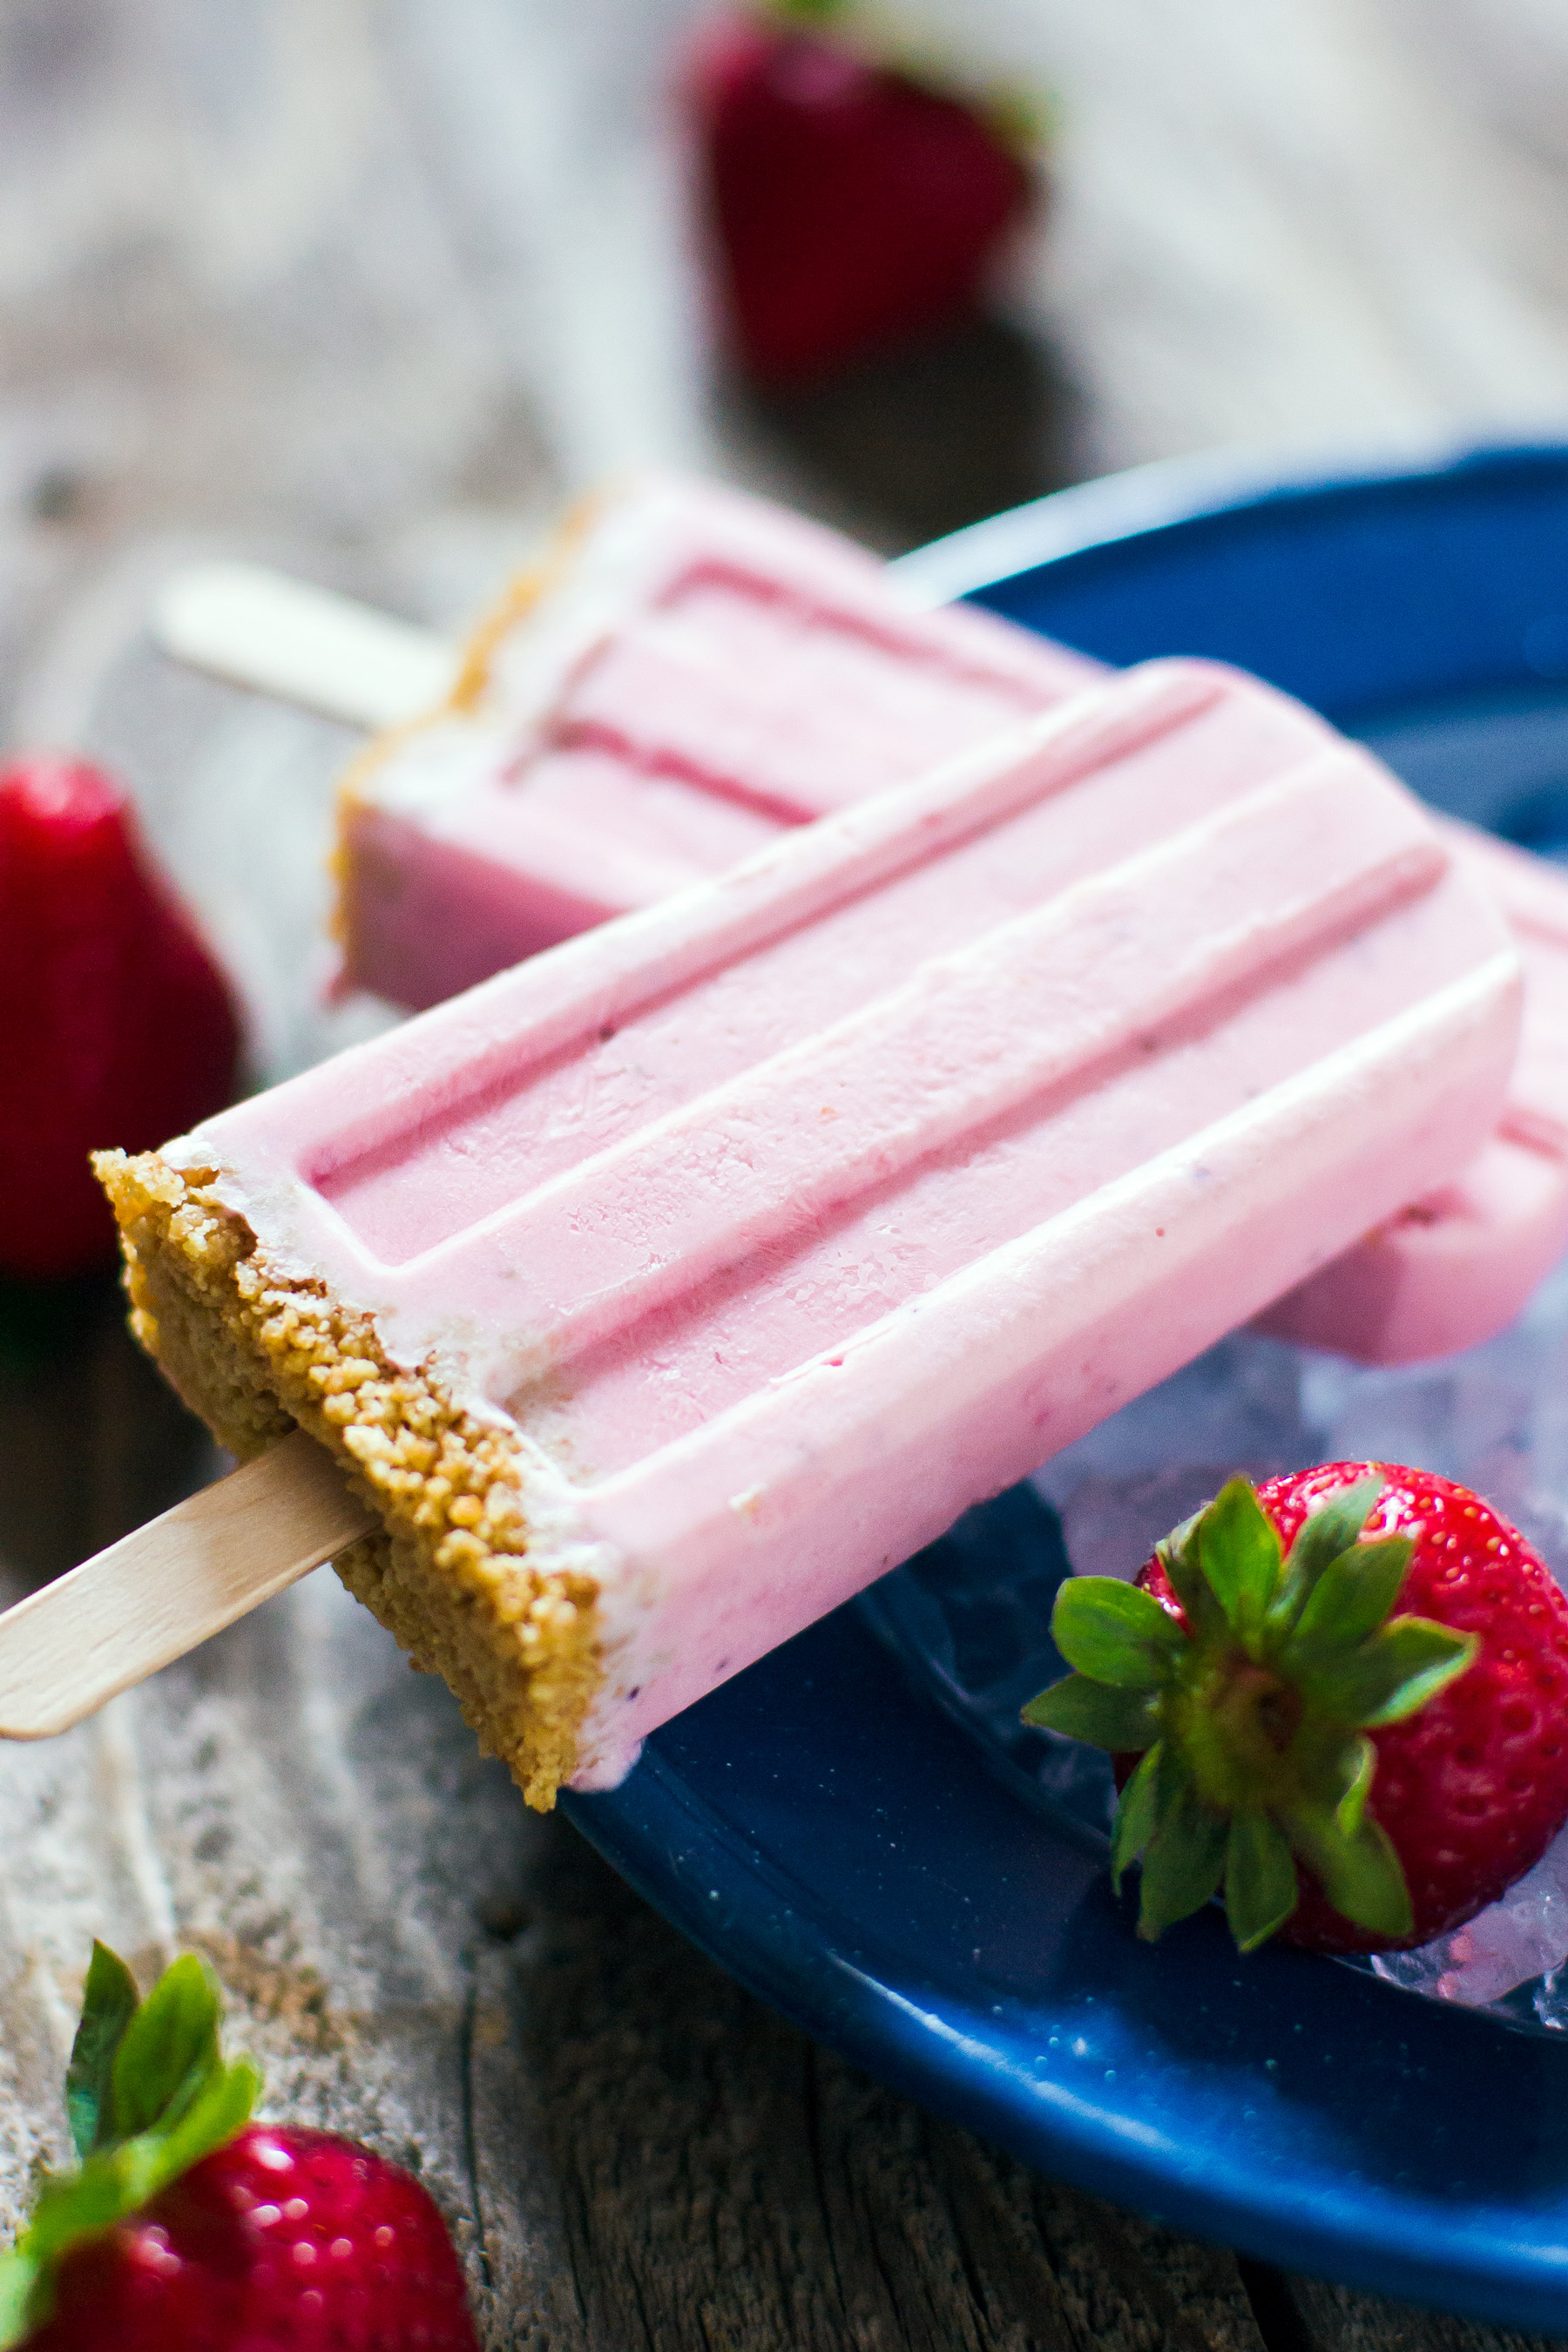 Strawberry Cheesecake Ice Pops by Sam Henderson of Today's Nest